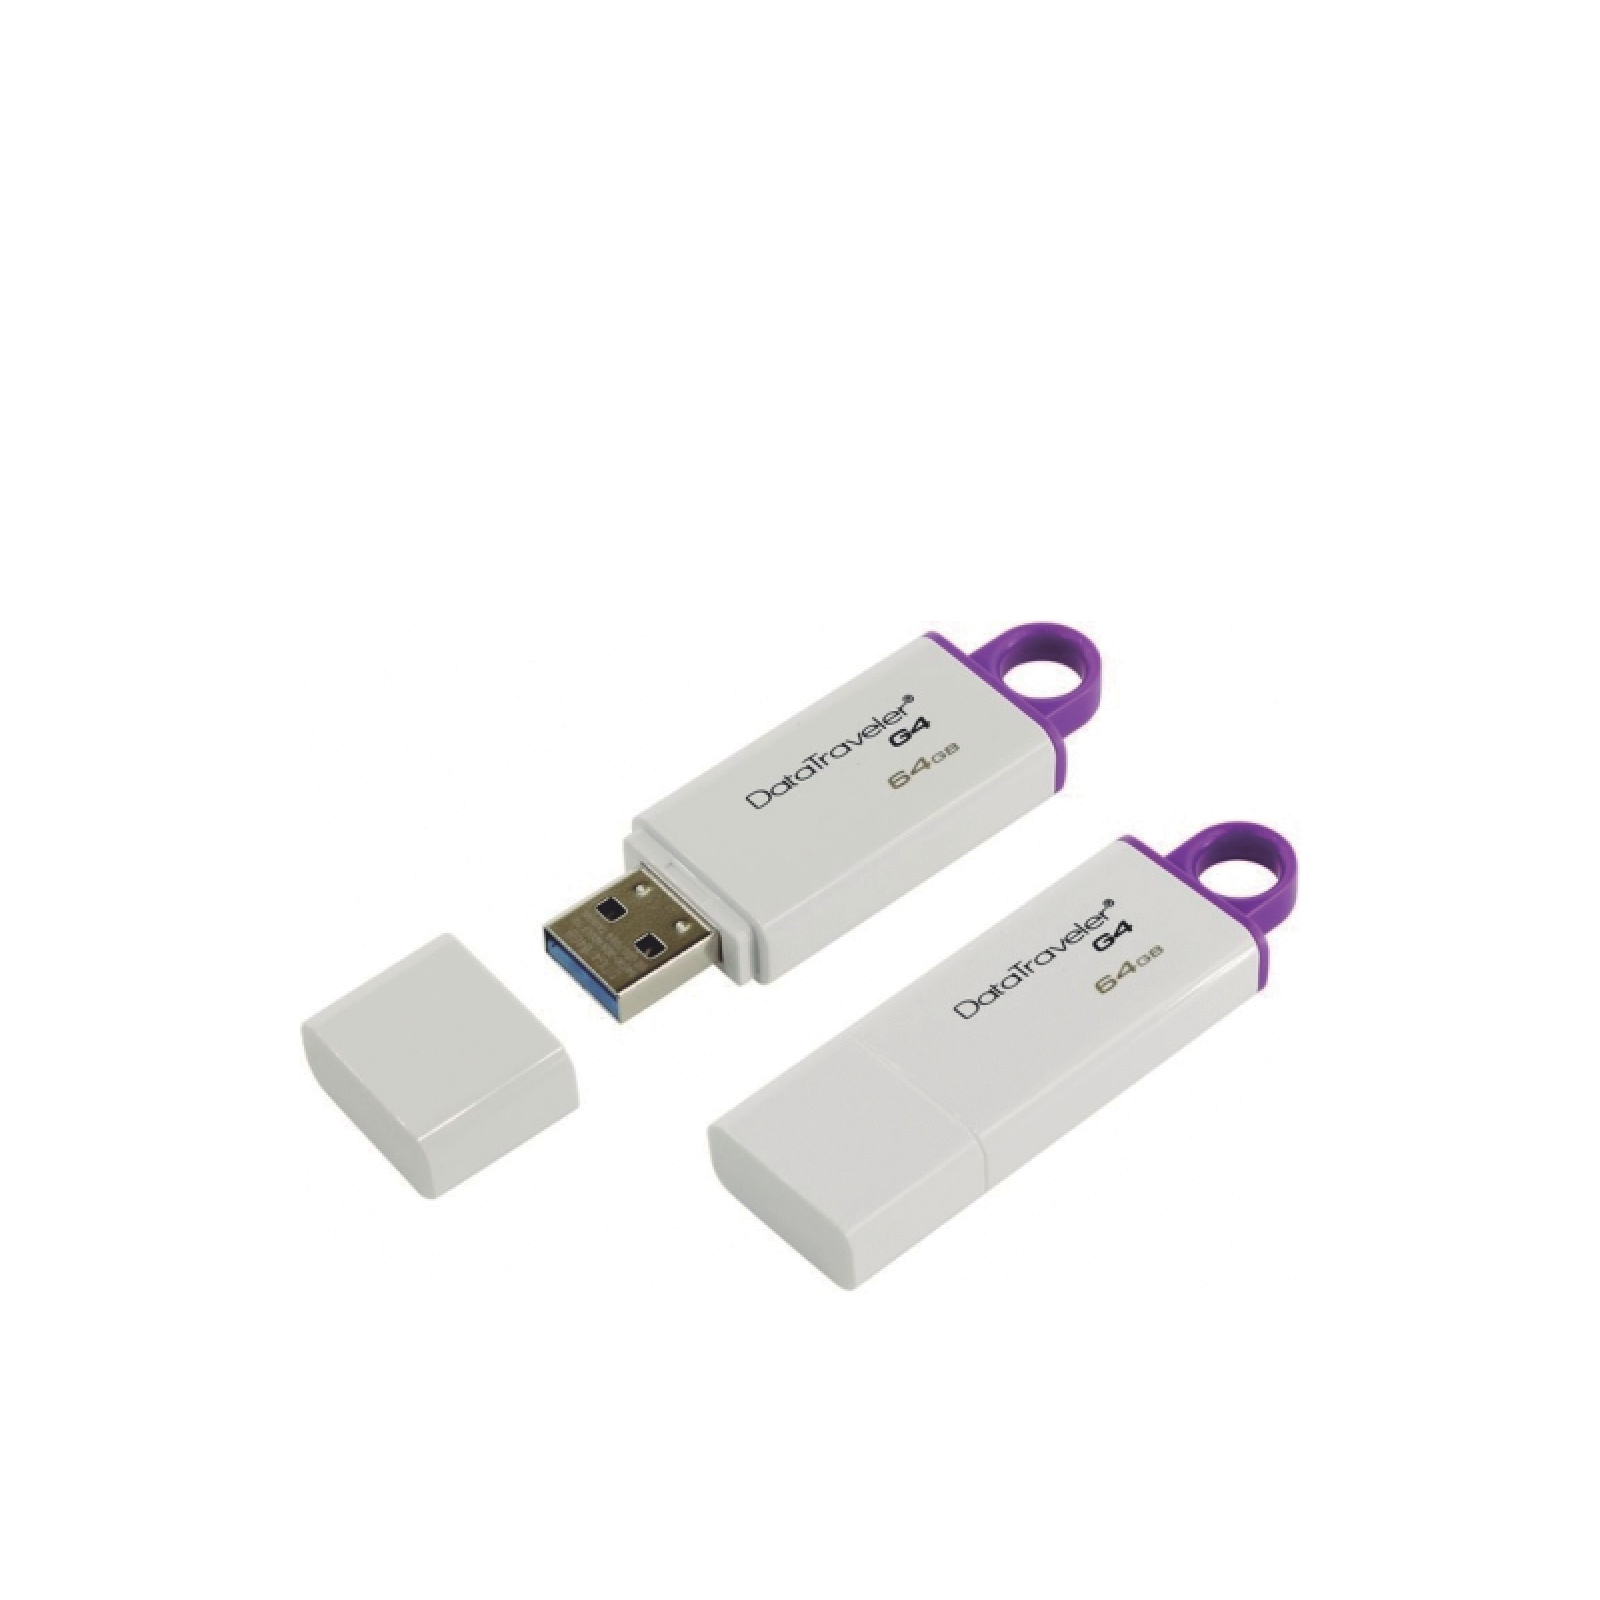 Usb 64GB Kingston Dtig4